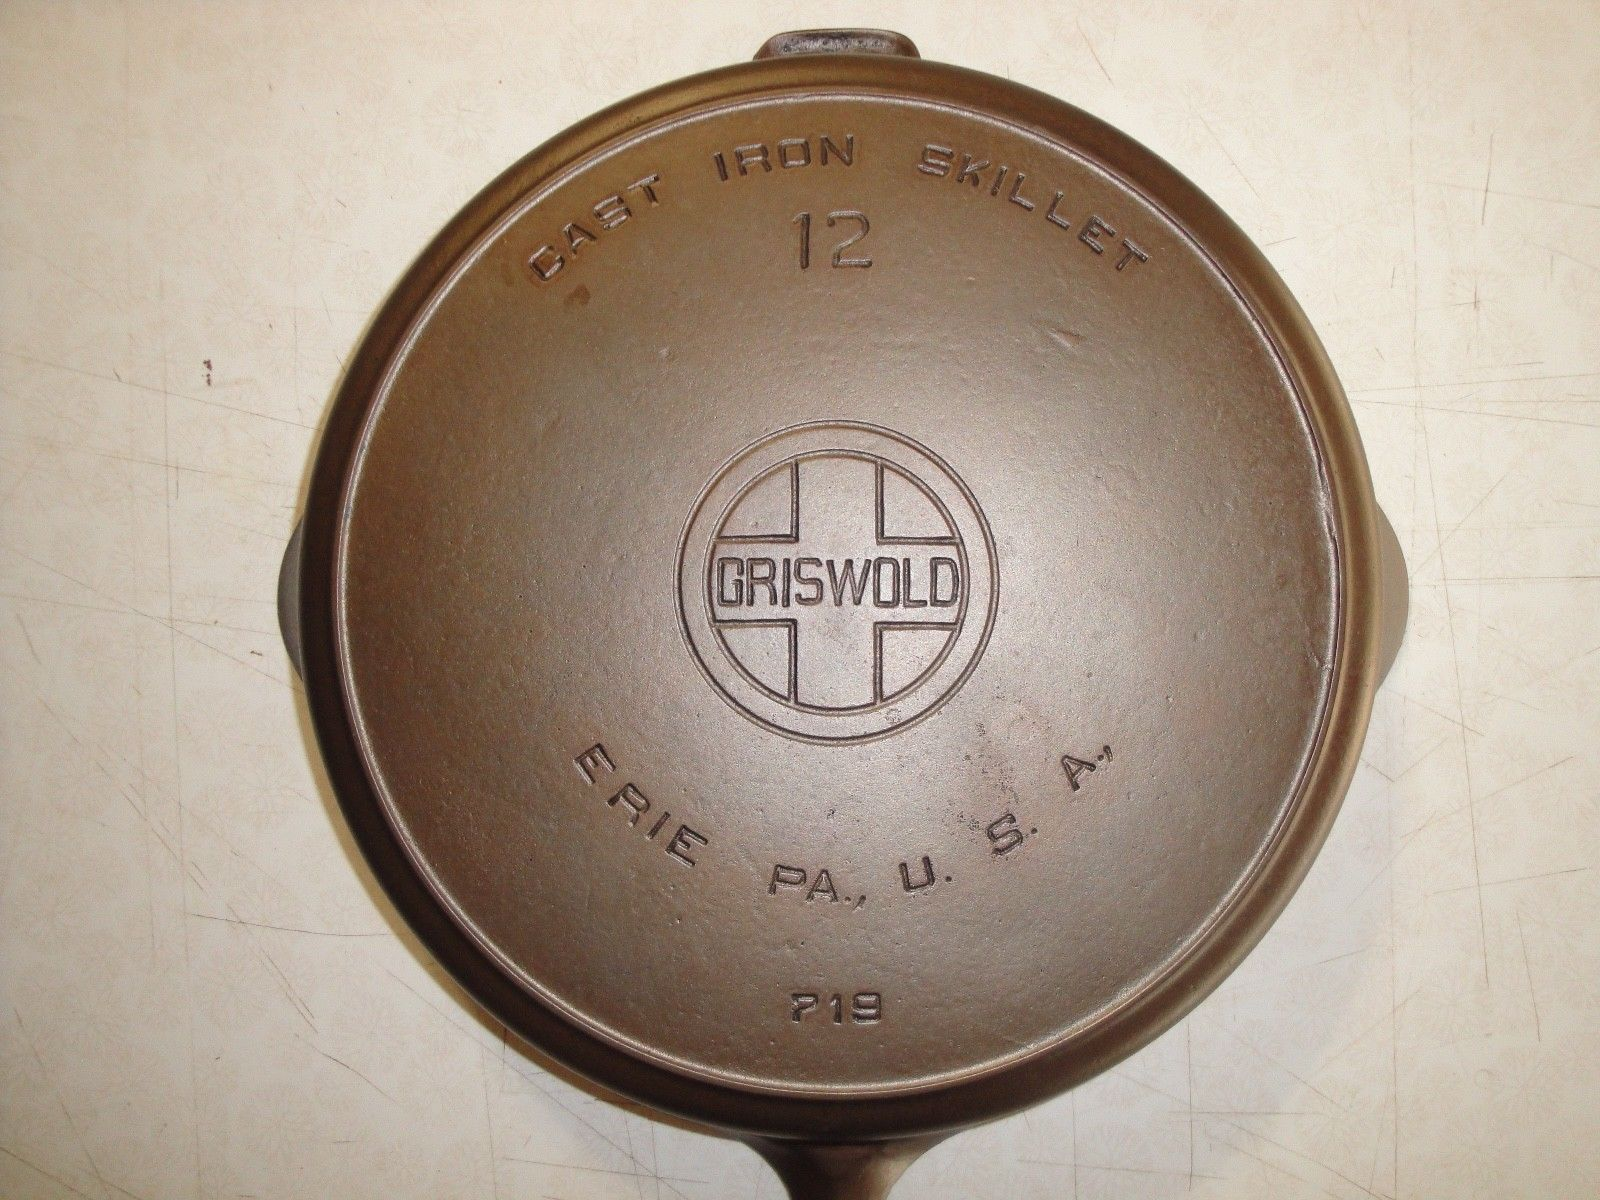 Griswold_12.jpg